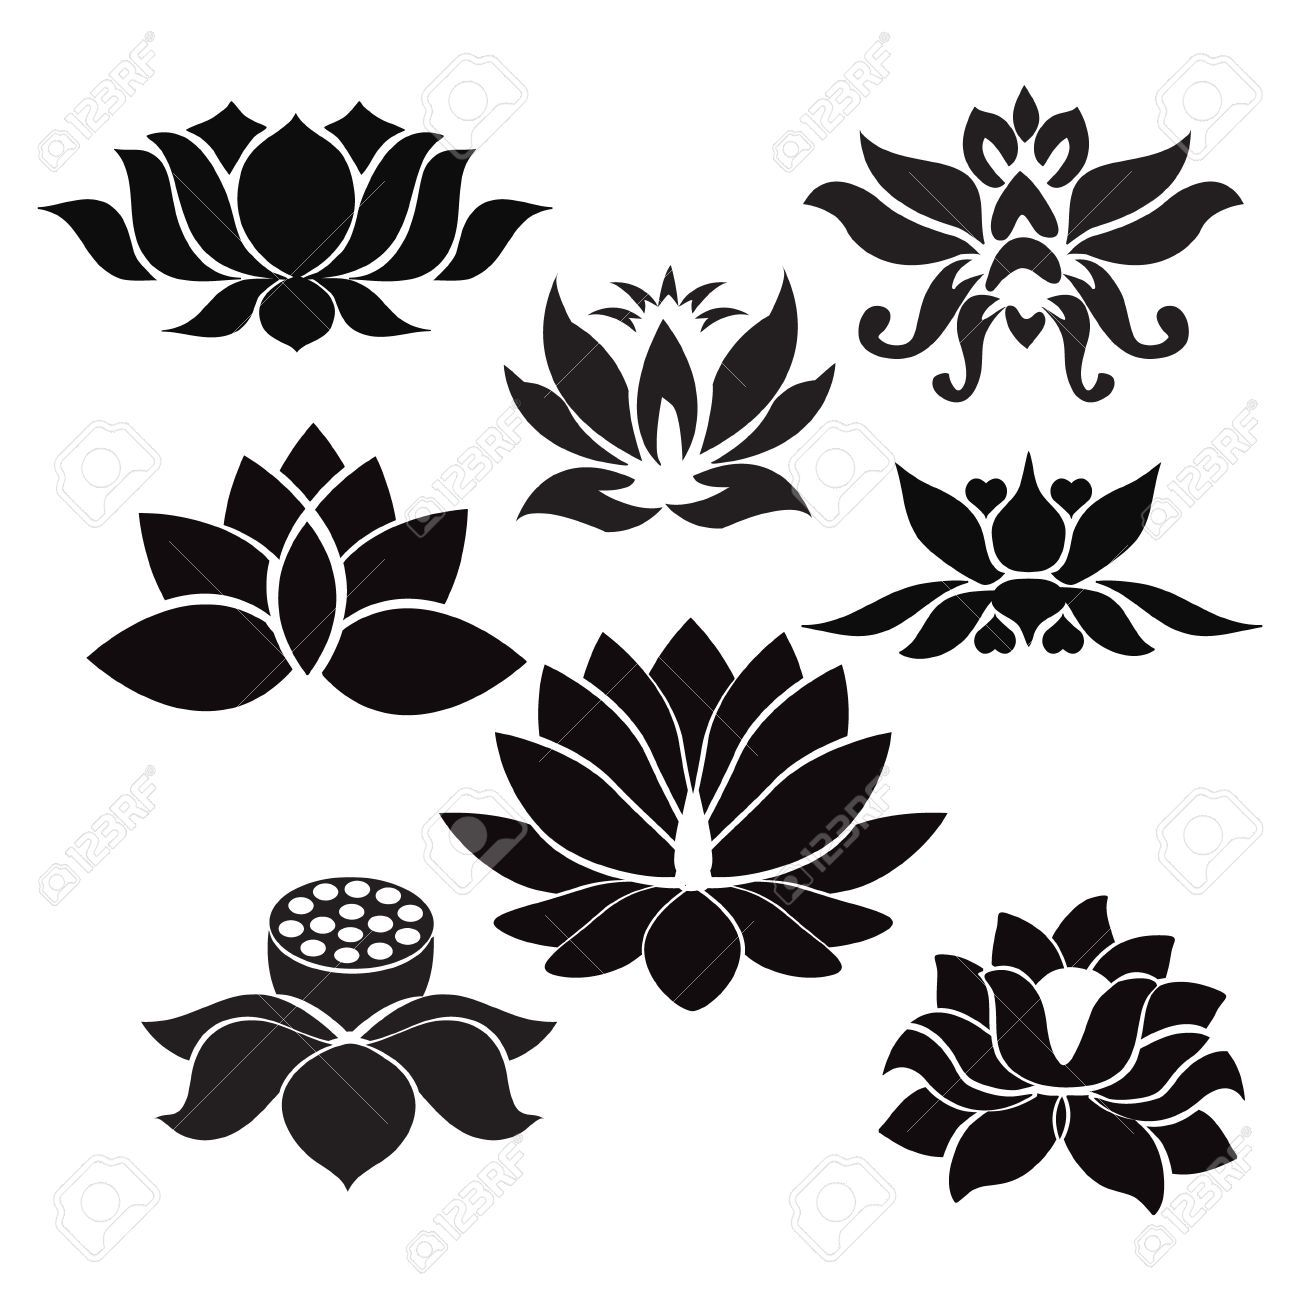 Pin by isa virtual on flowers design pinterest photo about vector lotus flowers silhouettes illustration on white background 50278812 izmirmasajfo